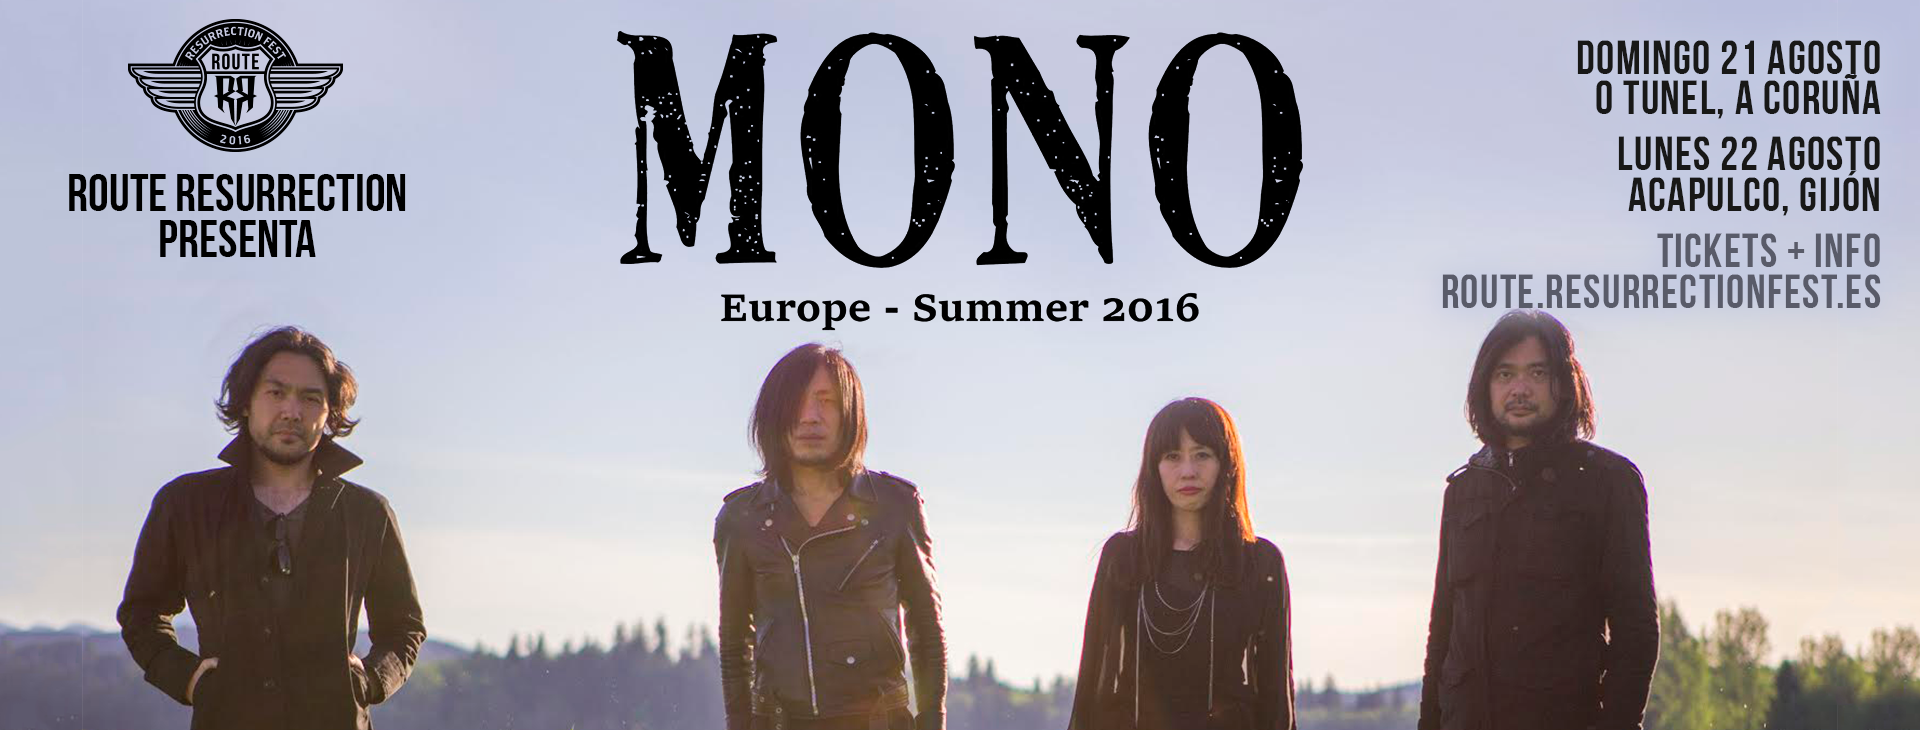 Route Resurrection Fest 2016 - MONO - Event